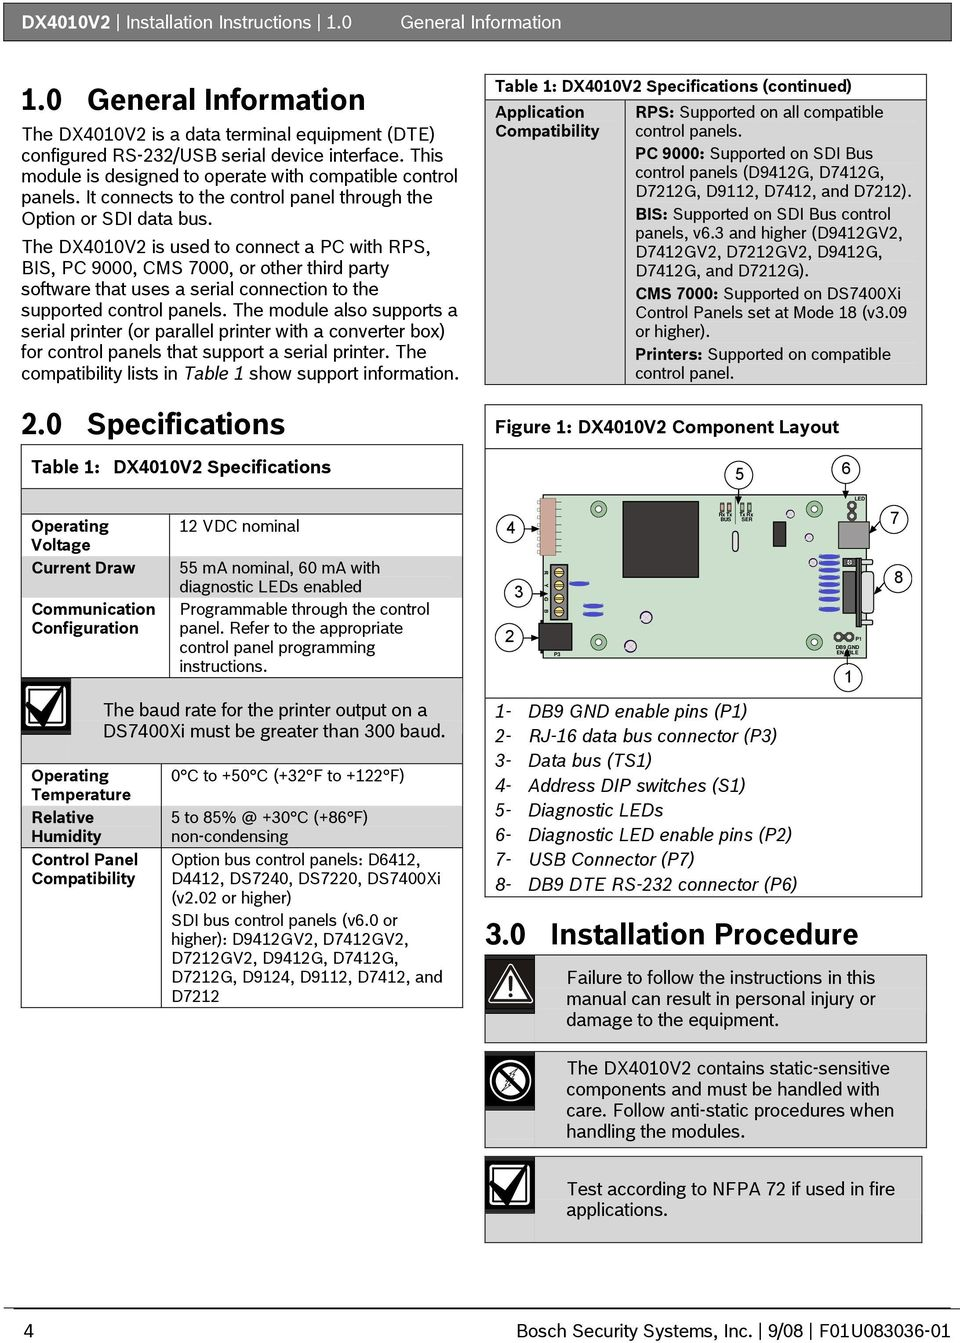 DX4010V2. Installation Instructions. RS-232/USB Serial Interface ...